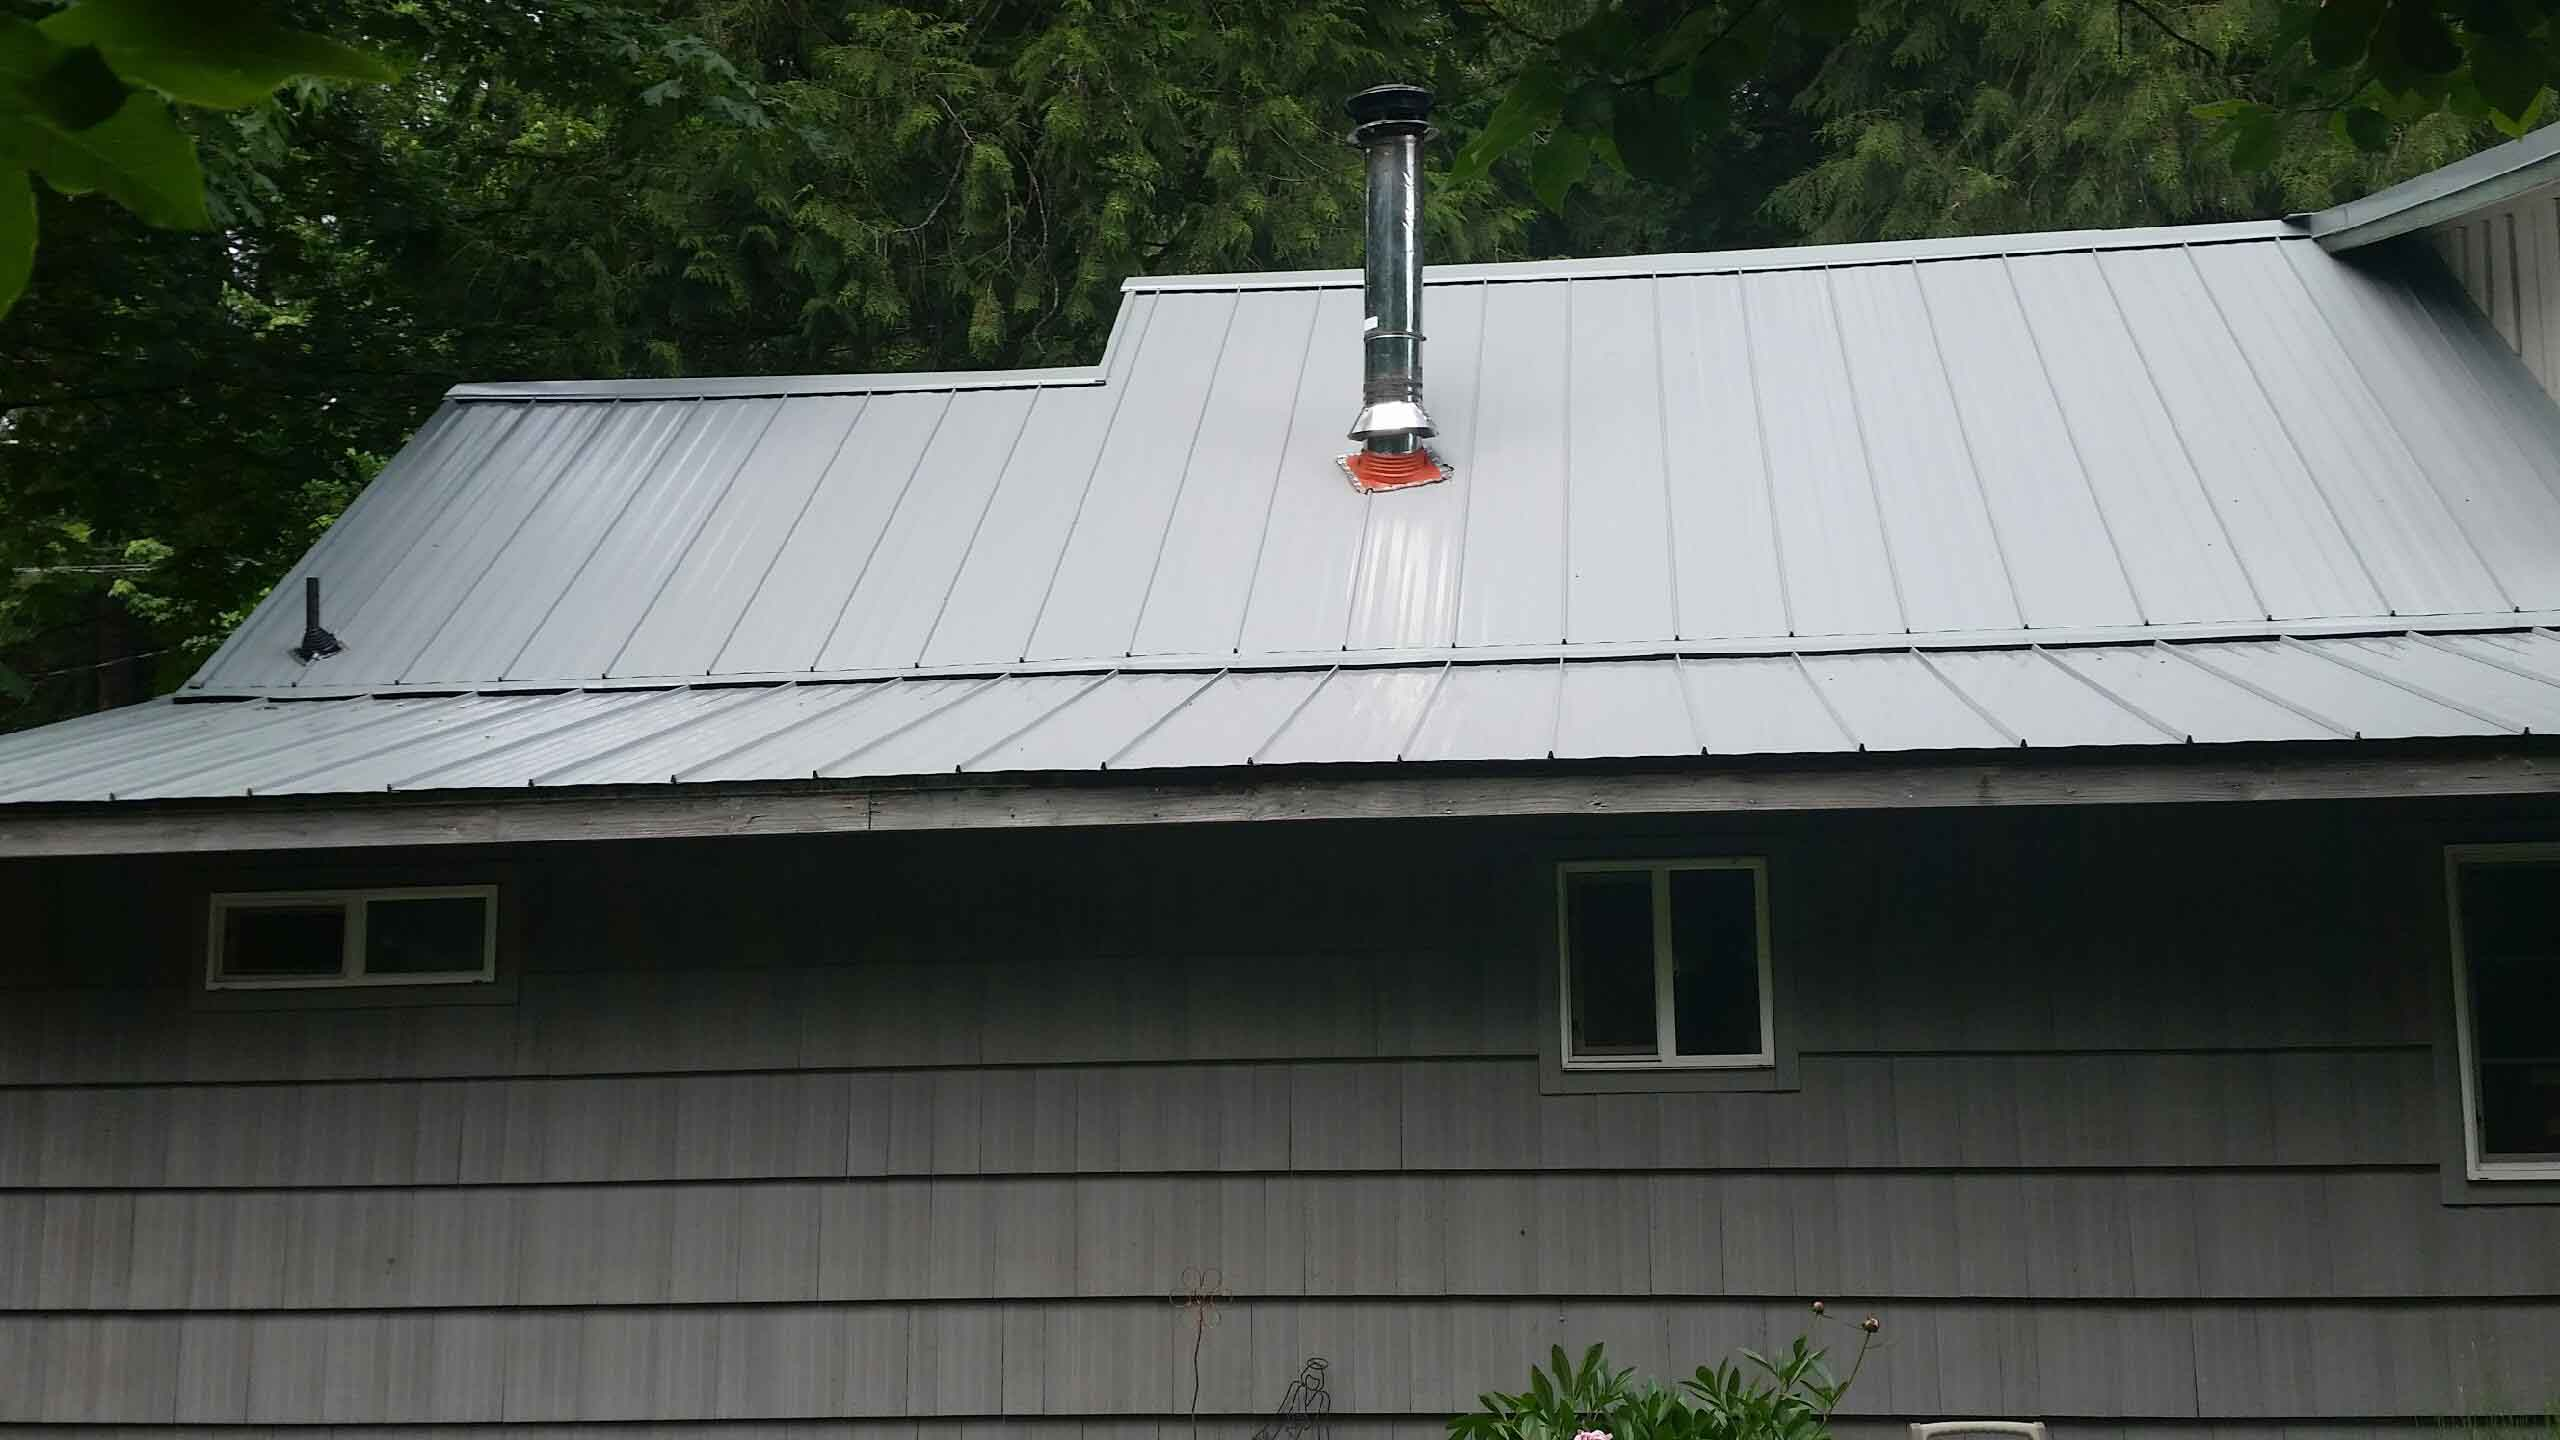 roofing052416-1a